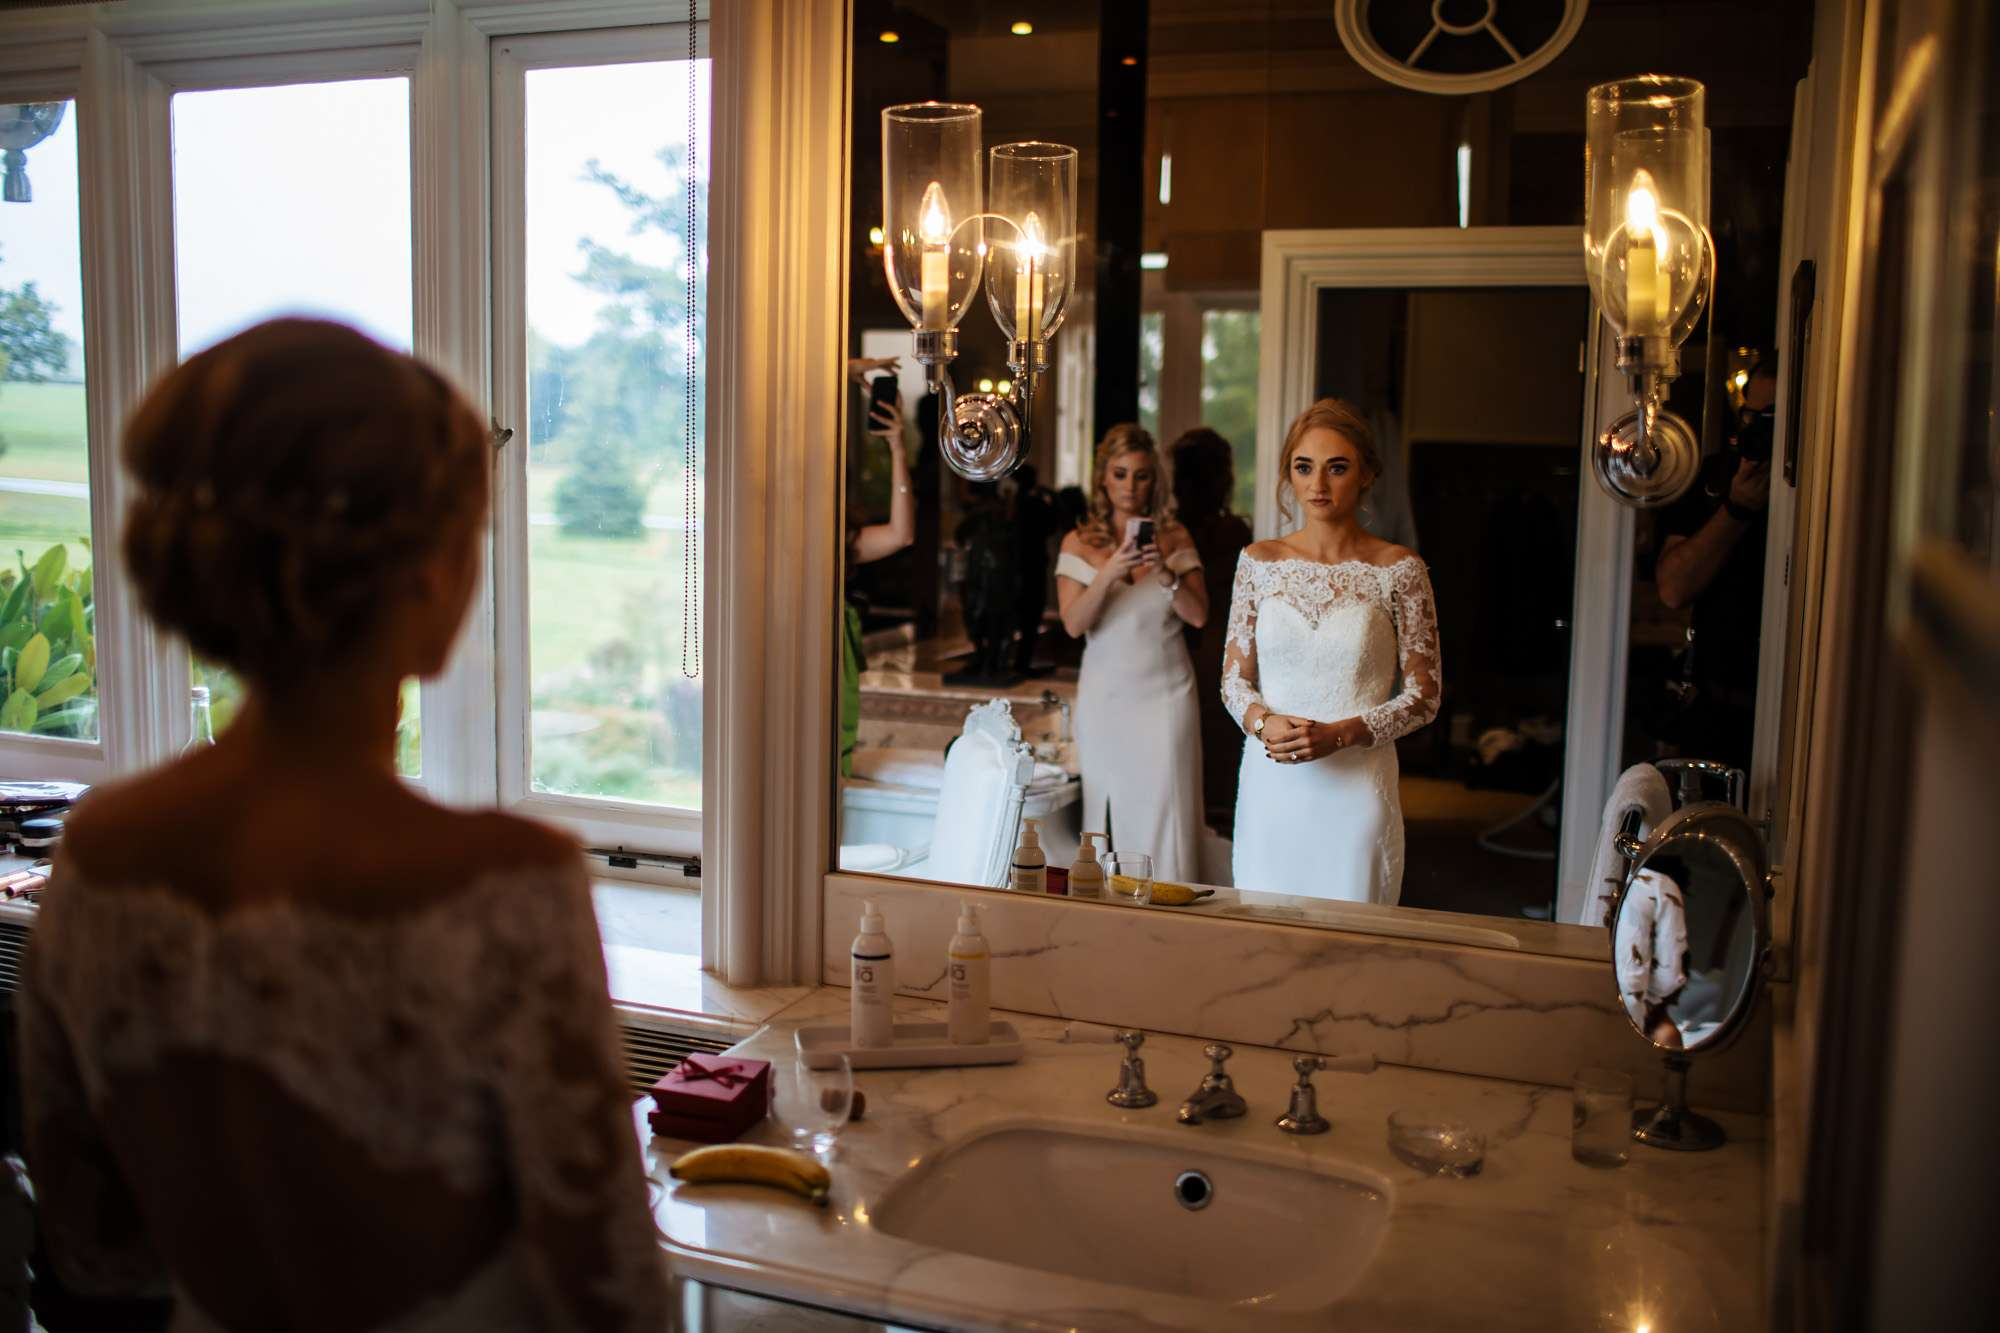 Bride looking in the mirror before her wedding ceremony